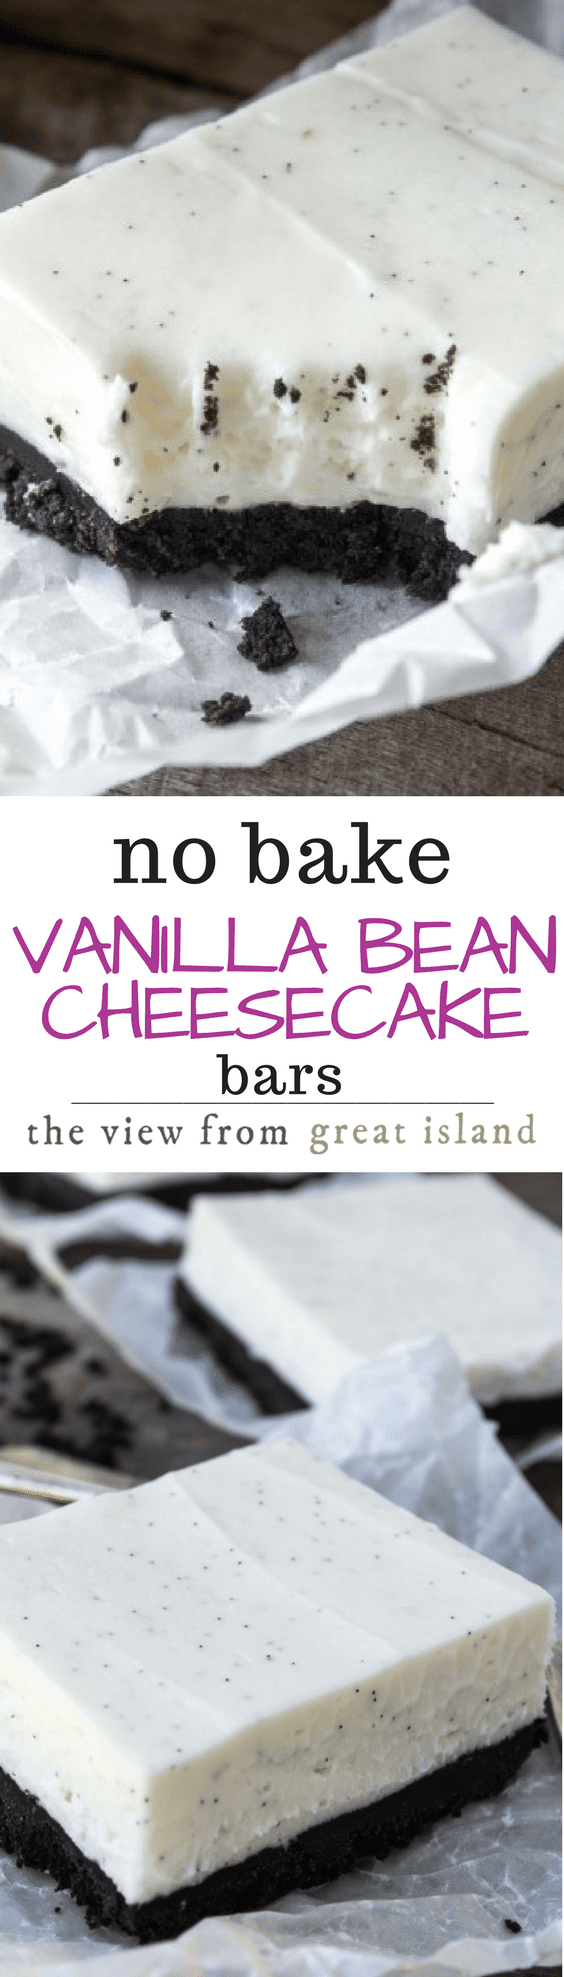 No Bake Vanilla Bean Cheesecake Bars The View From Great